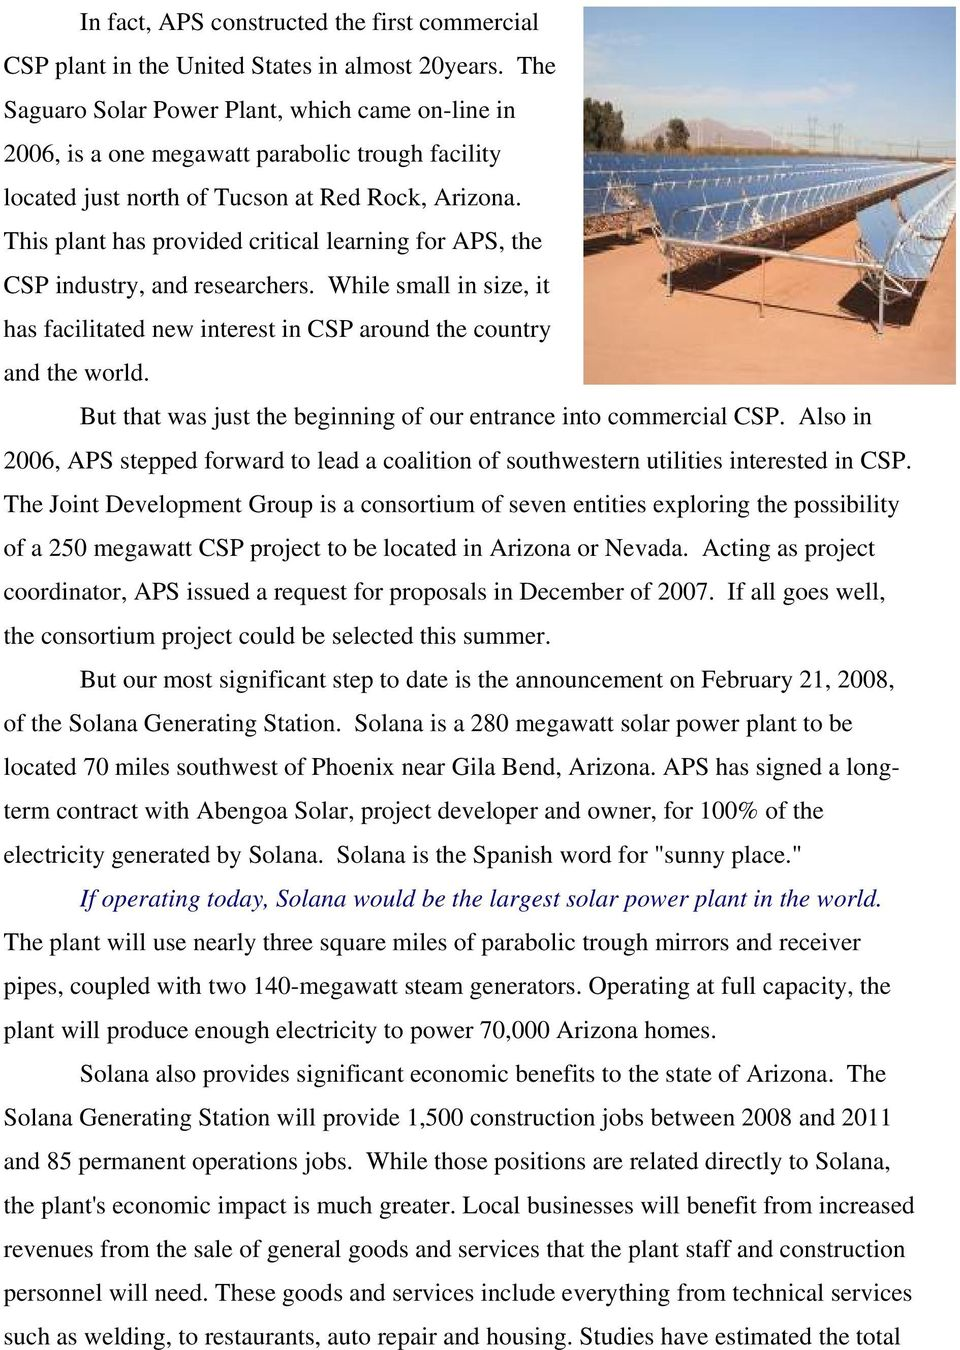 This plant has provided critical learning for APS, the CSP industry, and researchers. While small in size, it has facilitated new interest in CSP around the country and the world.